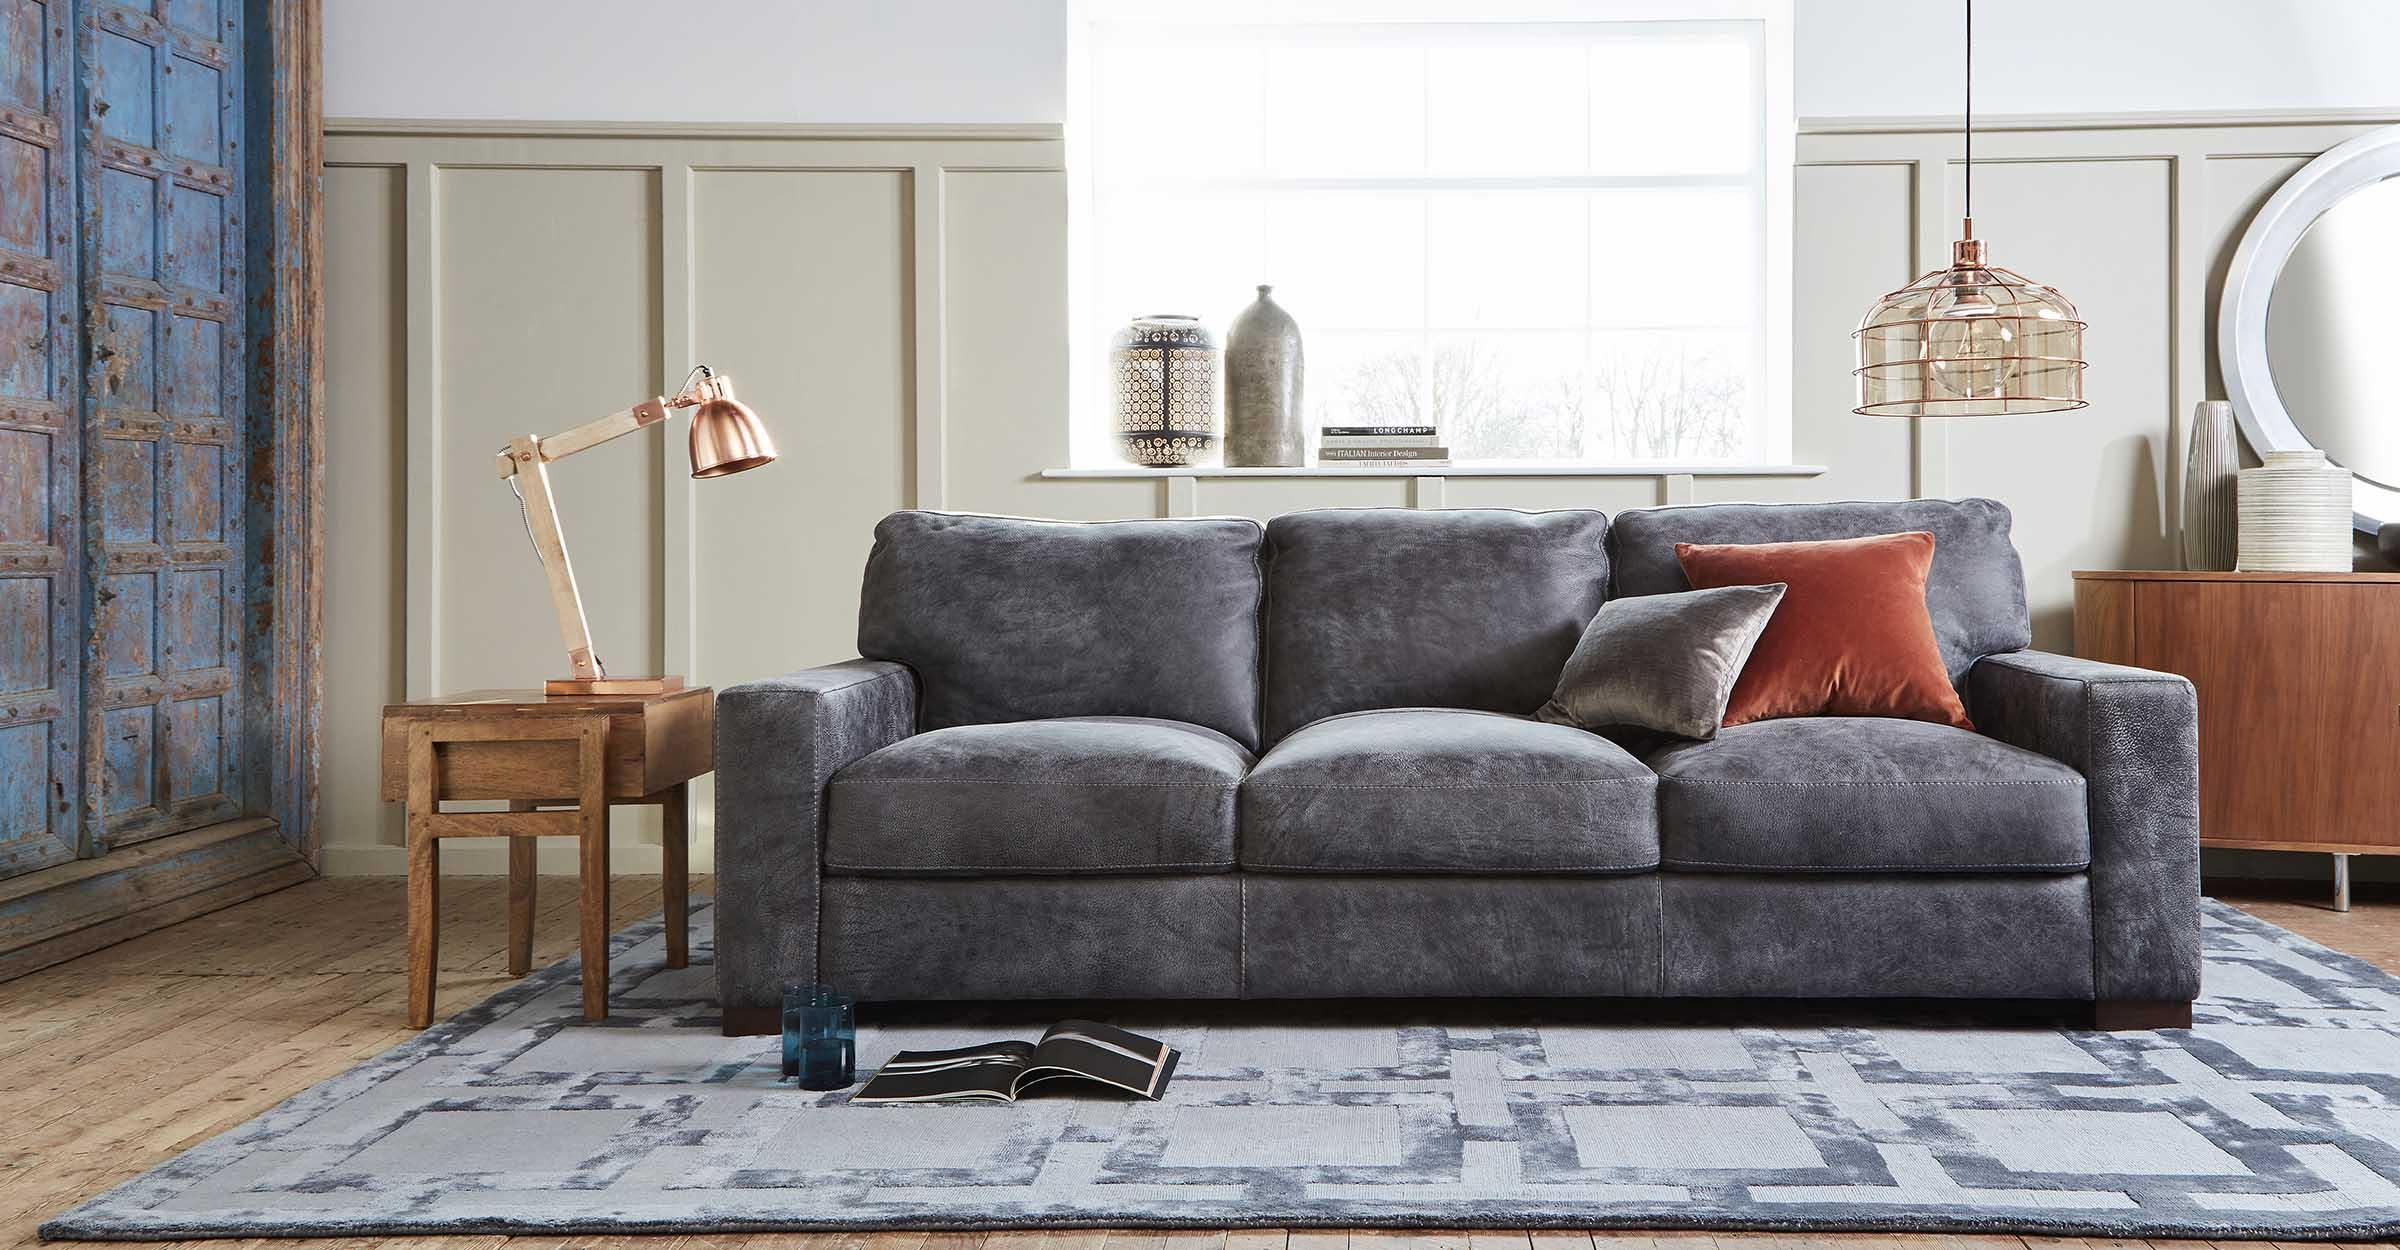 What makes a classic sofa?